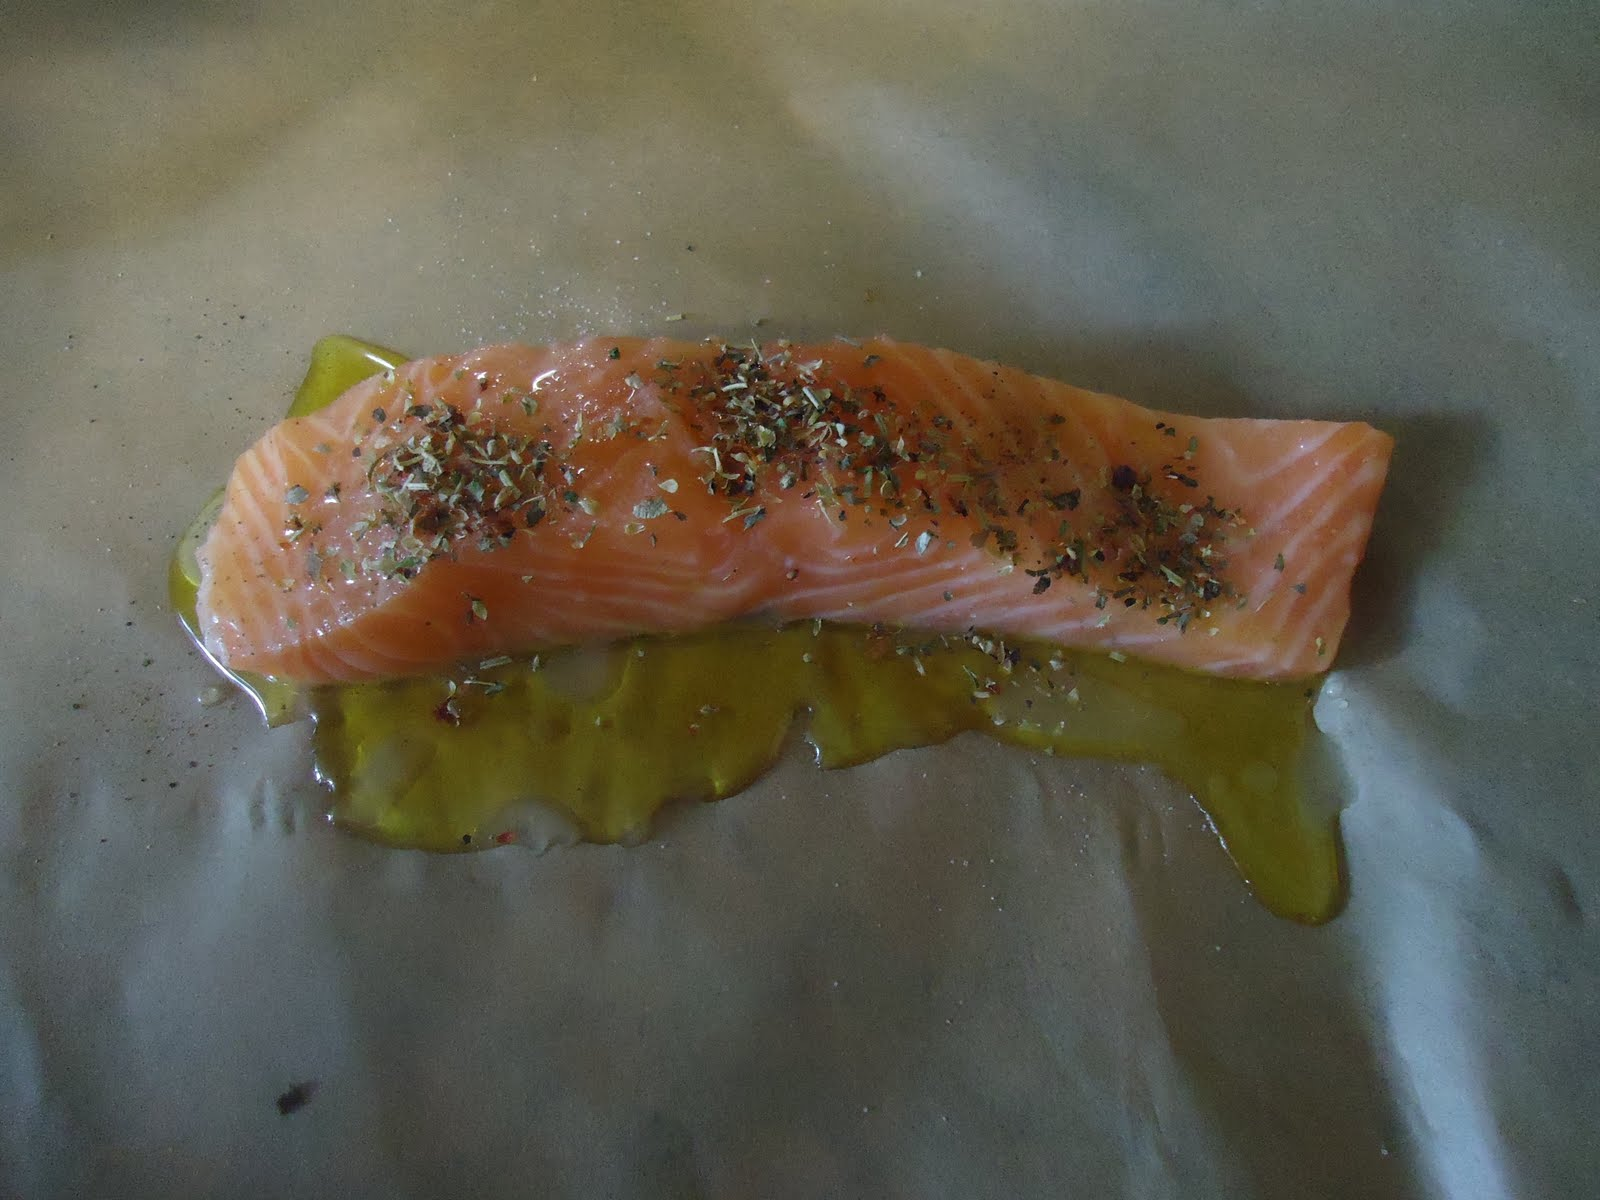 Salmon about to be cooked in the Oven